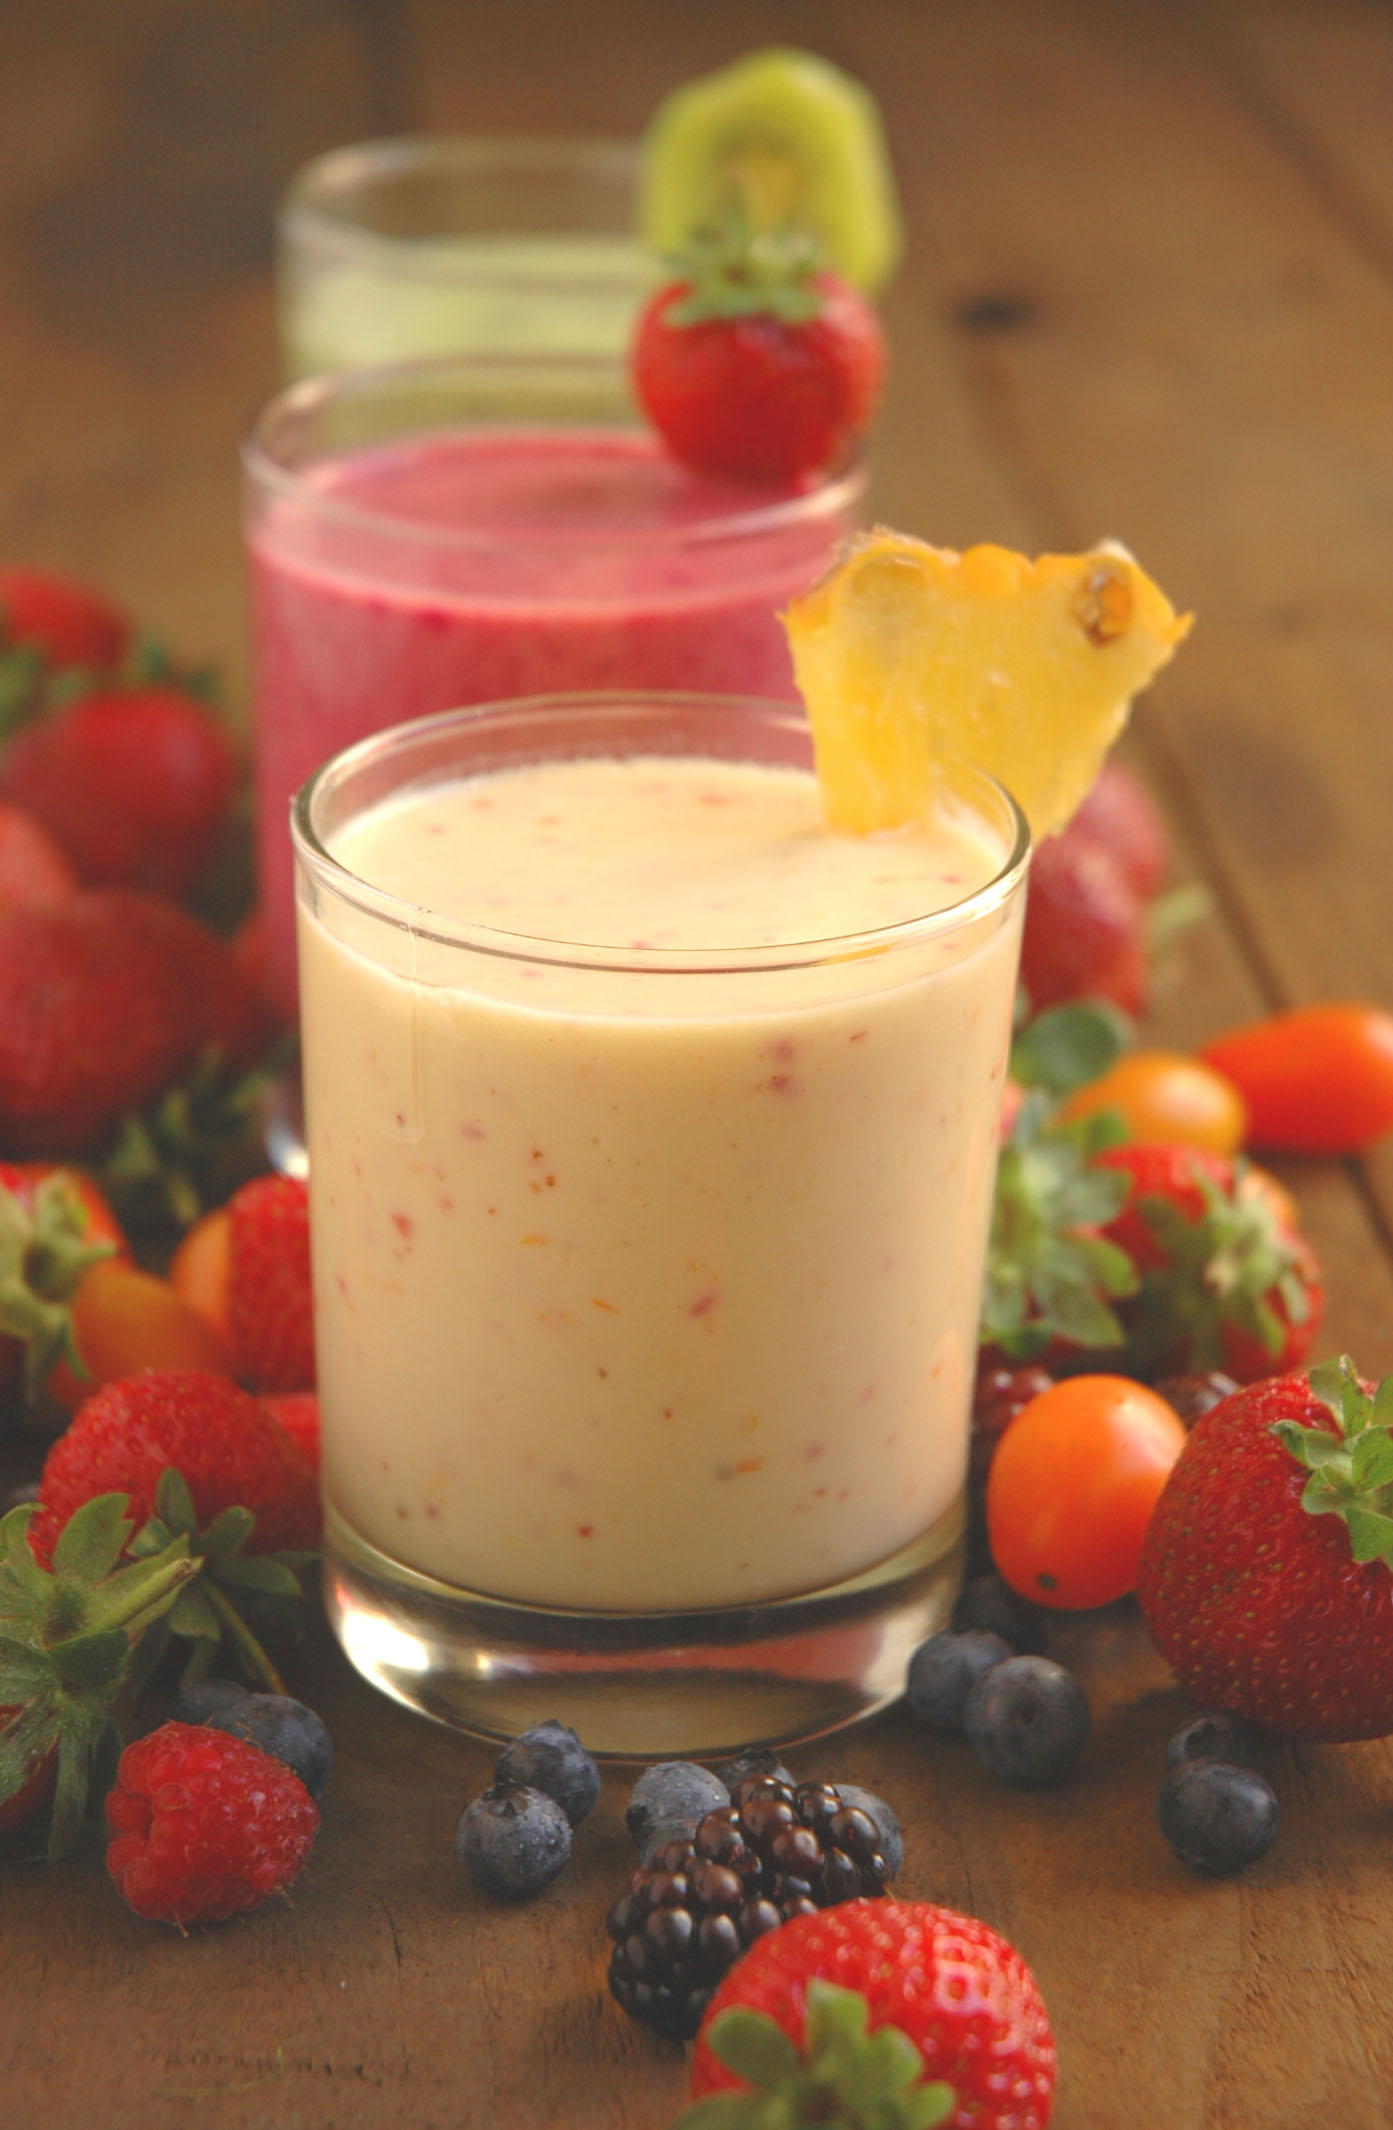 Smoothies - why not sneak in a vegetable or two?